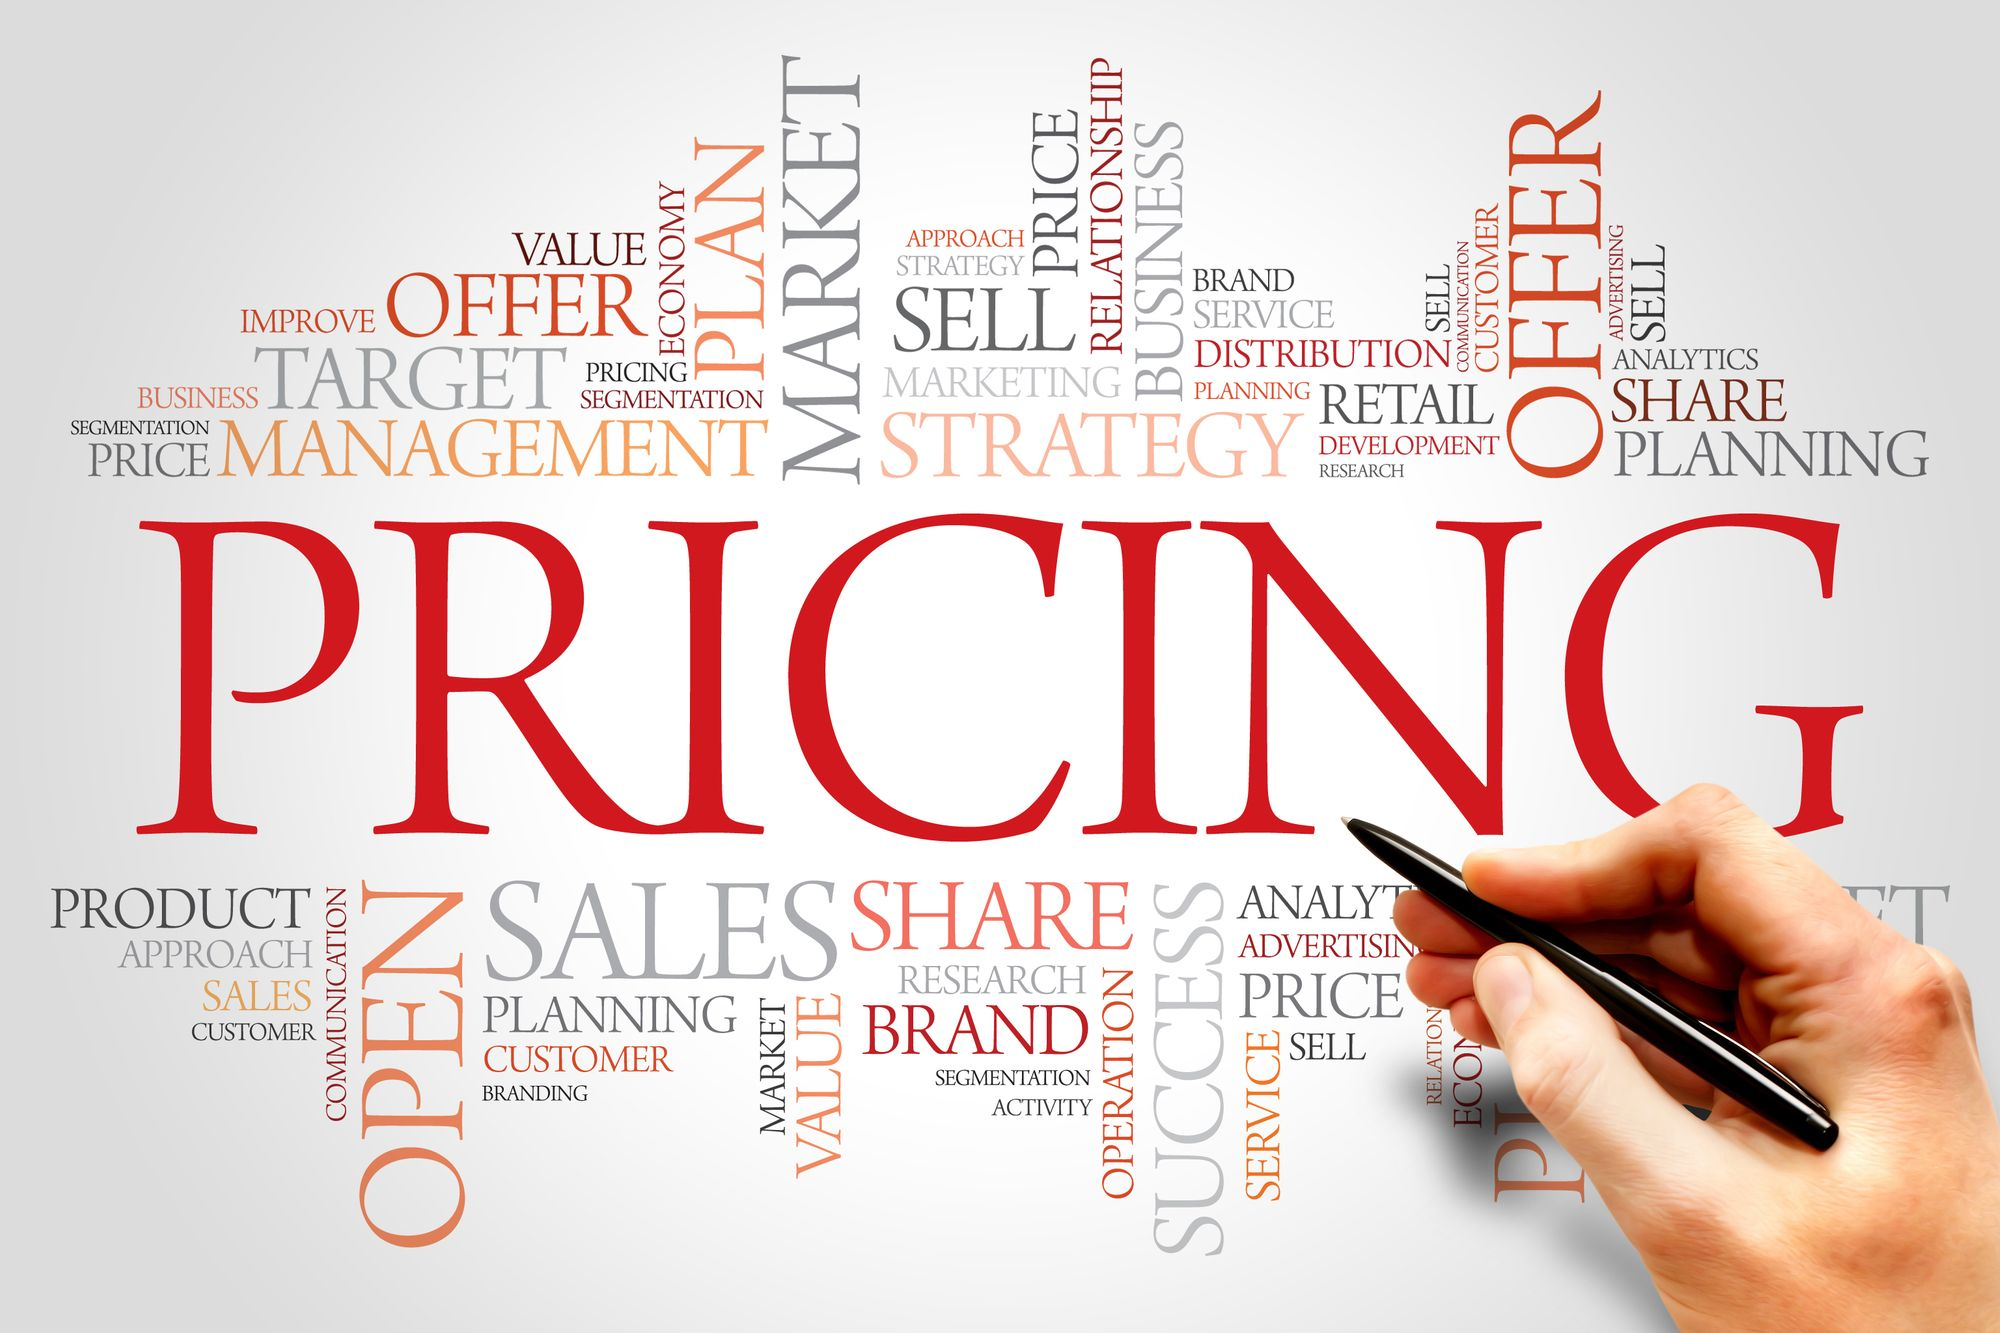 Price it Right! Best strategies to market your product.